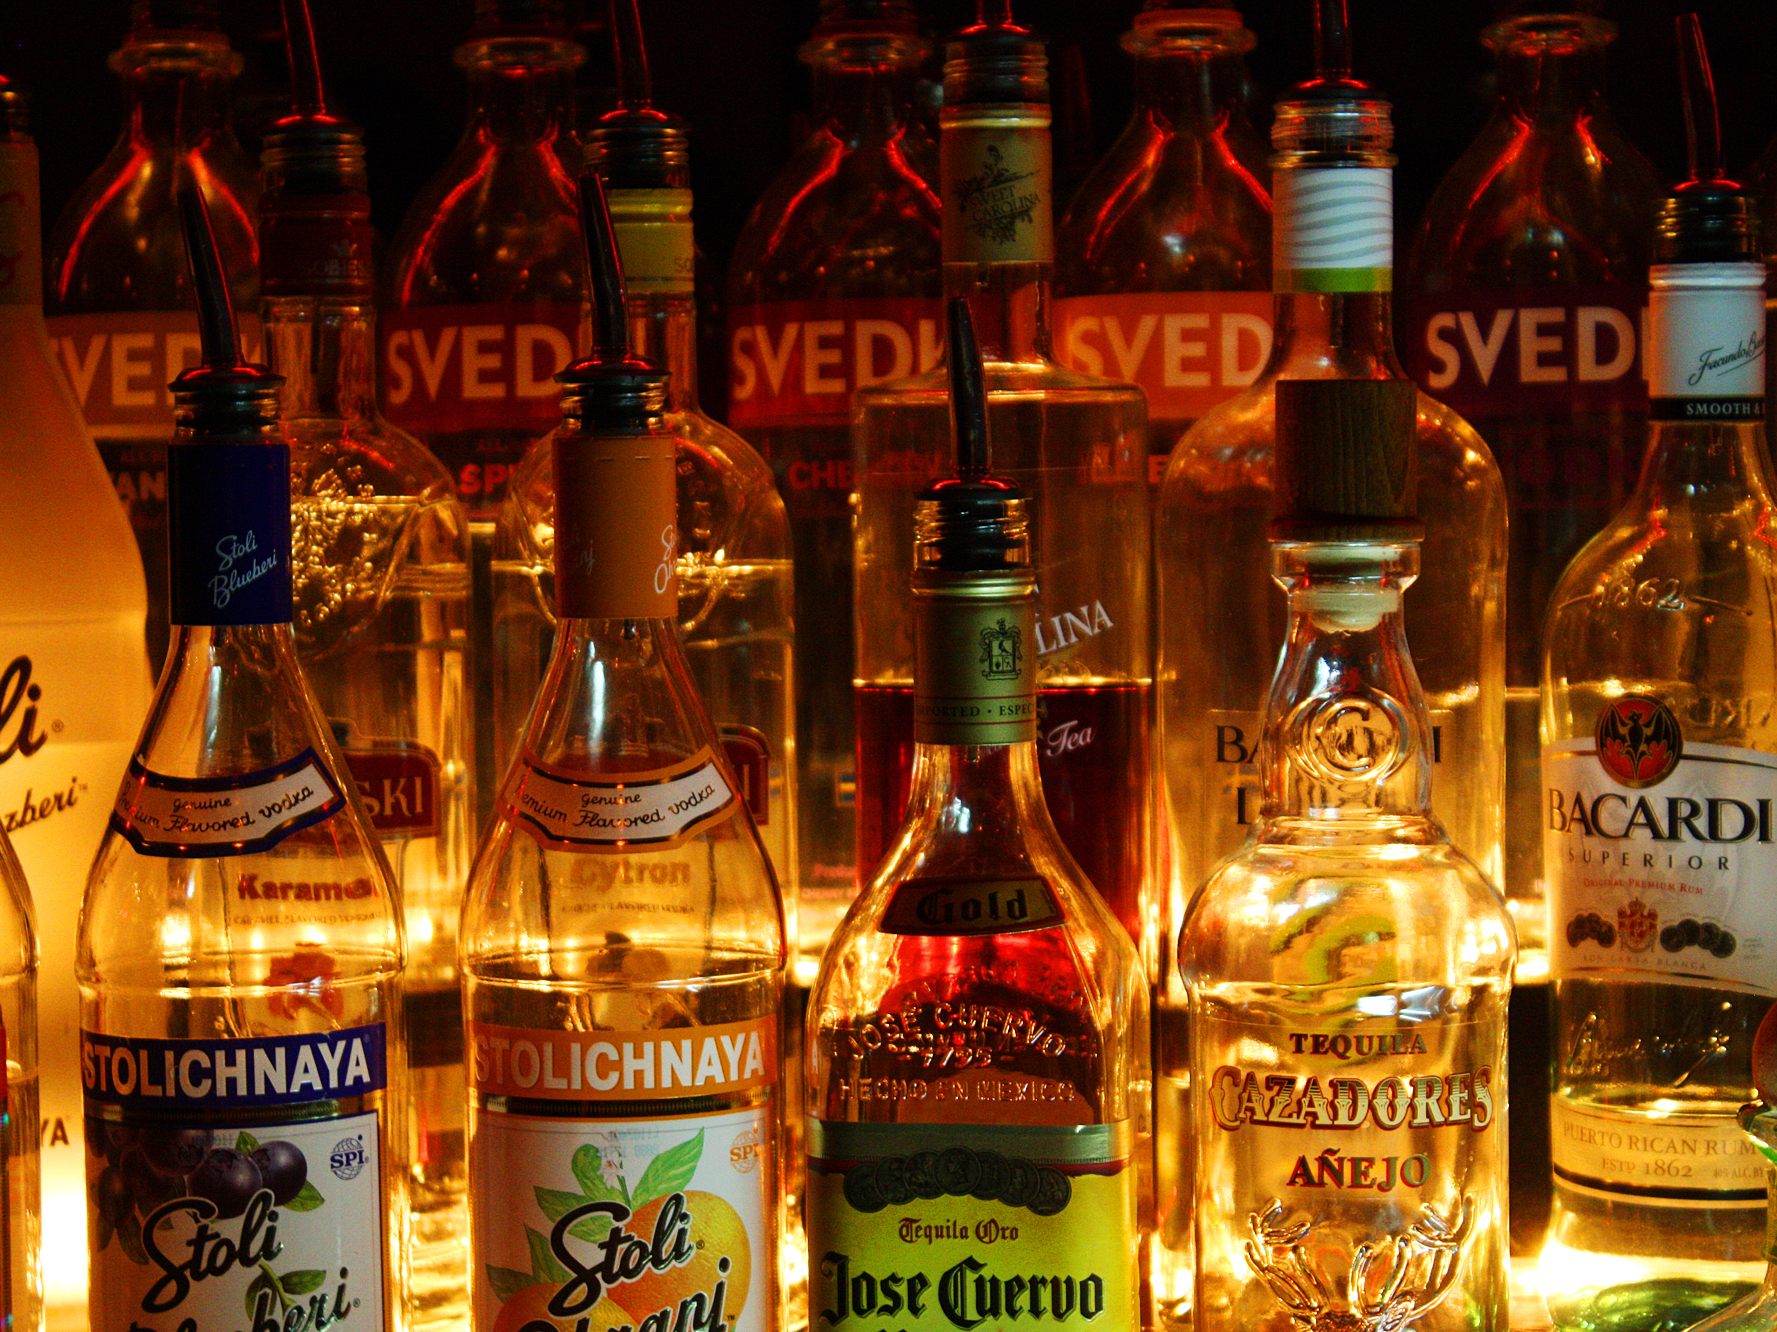 Excessive Drinking Causes 10 Percent Of Deaths In Working Adults